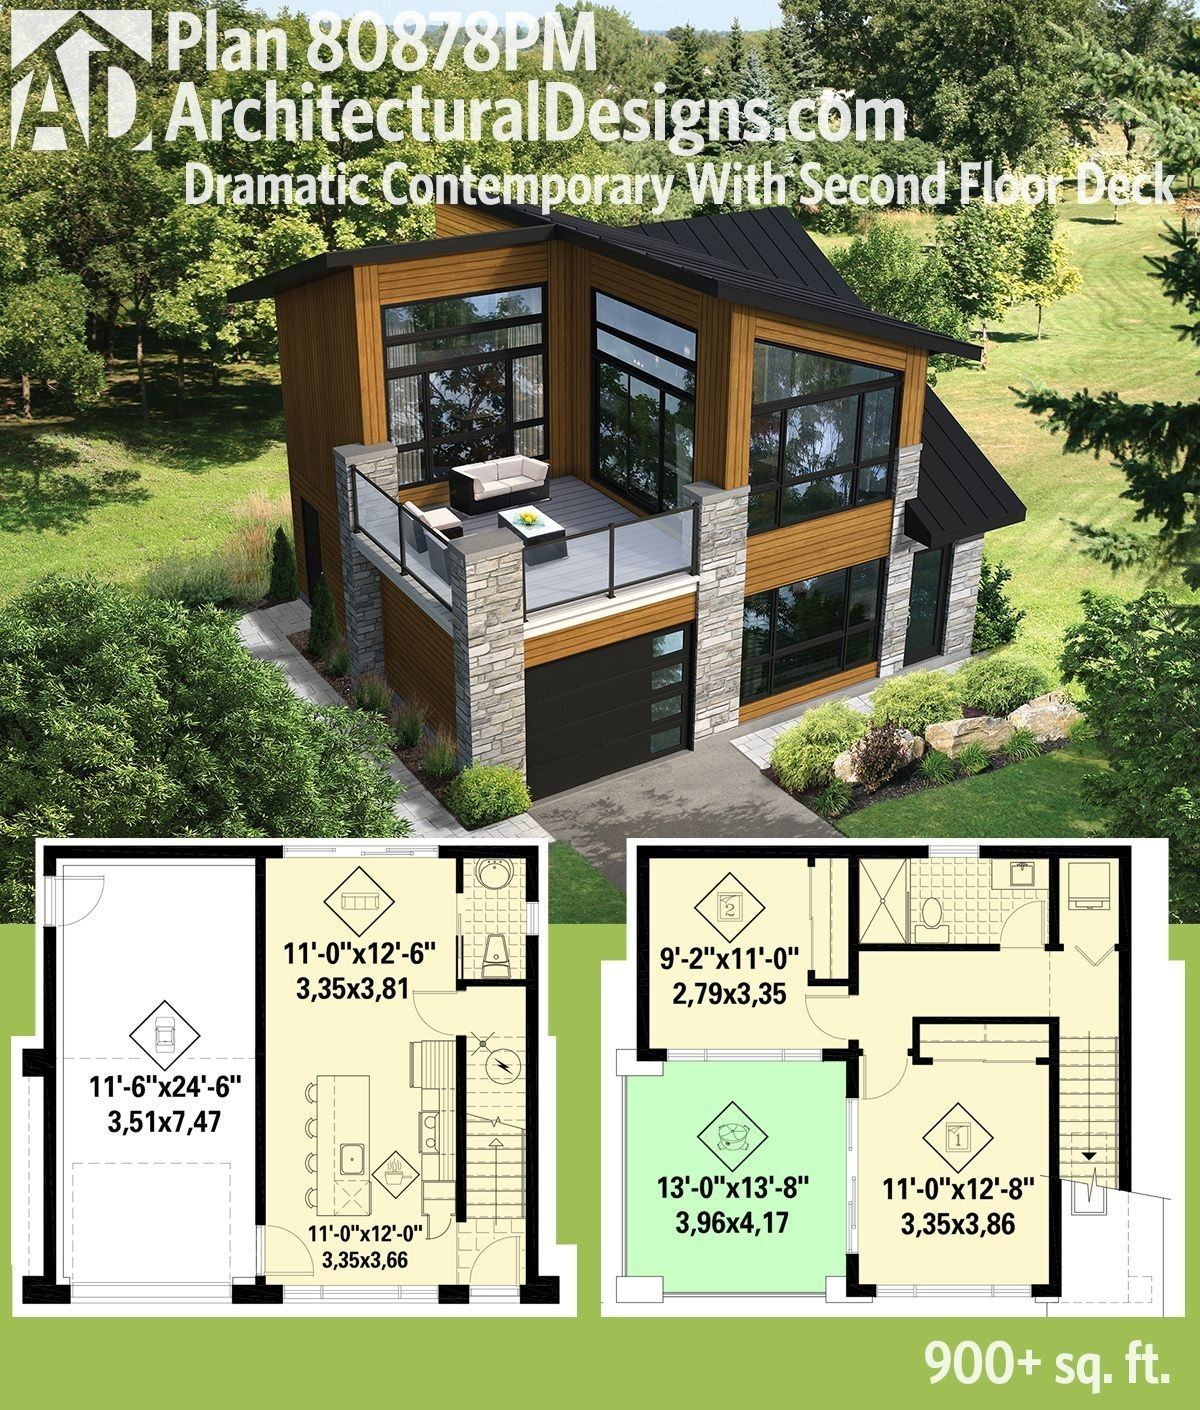 Pin By Sheri Hunt On Garage Small Modern House Plans Sims House Plans Small House Design